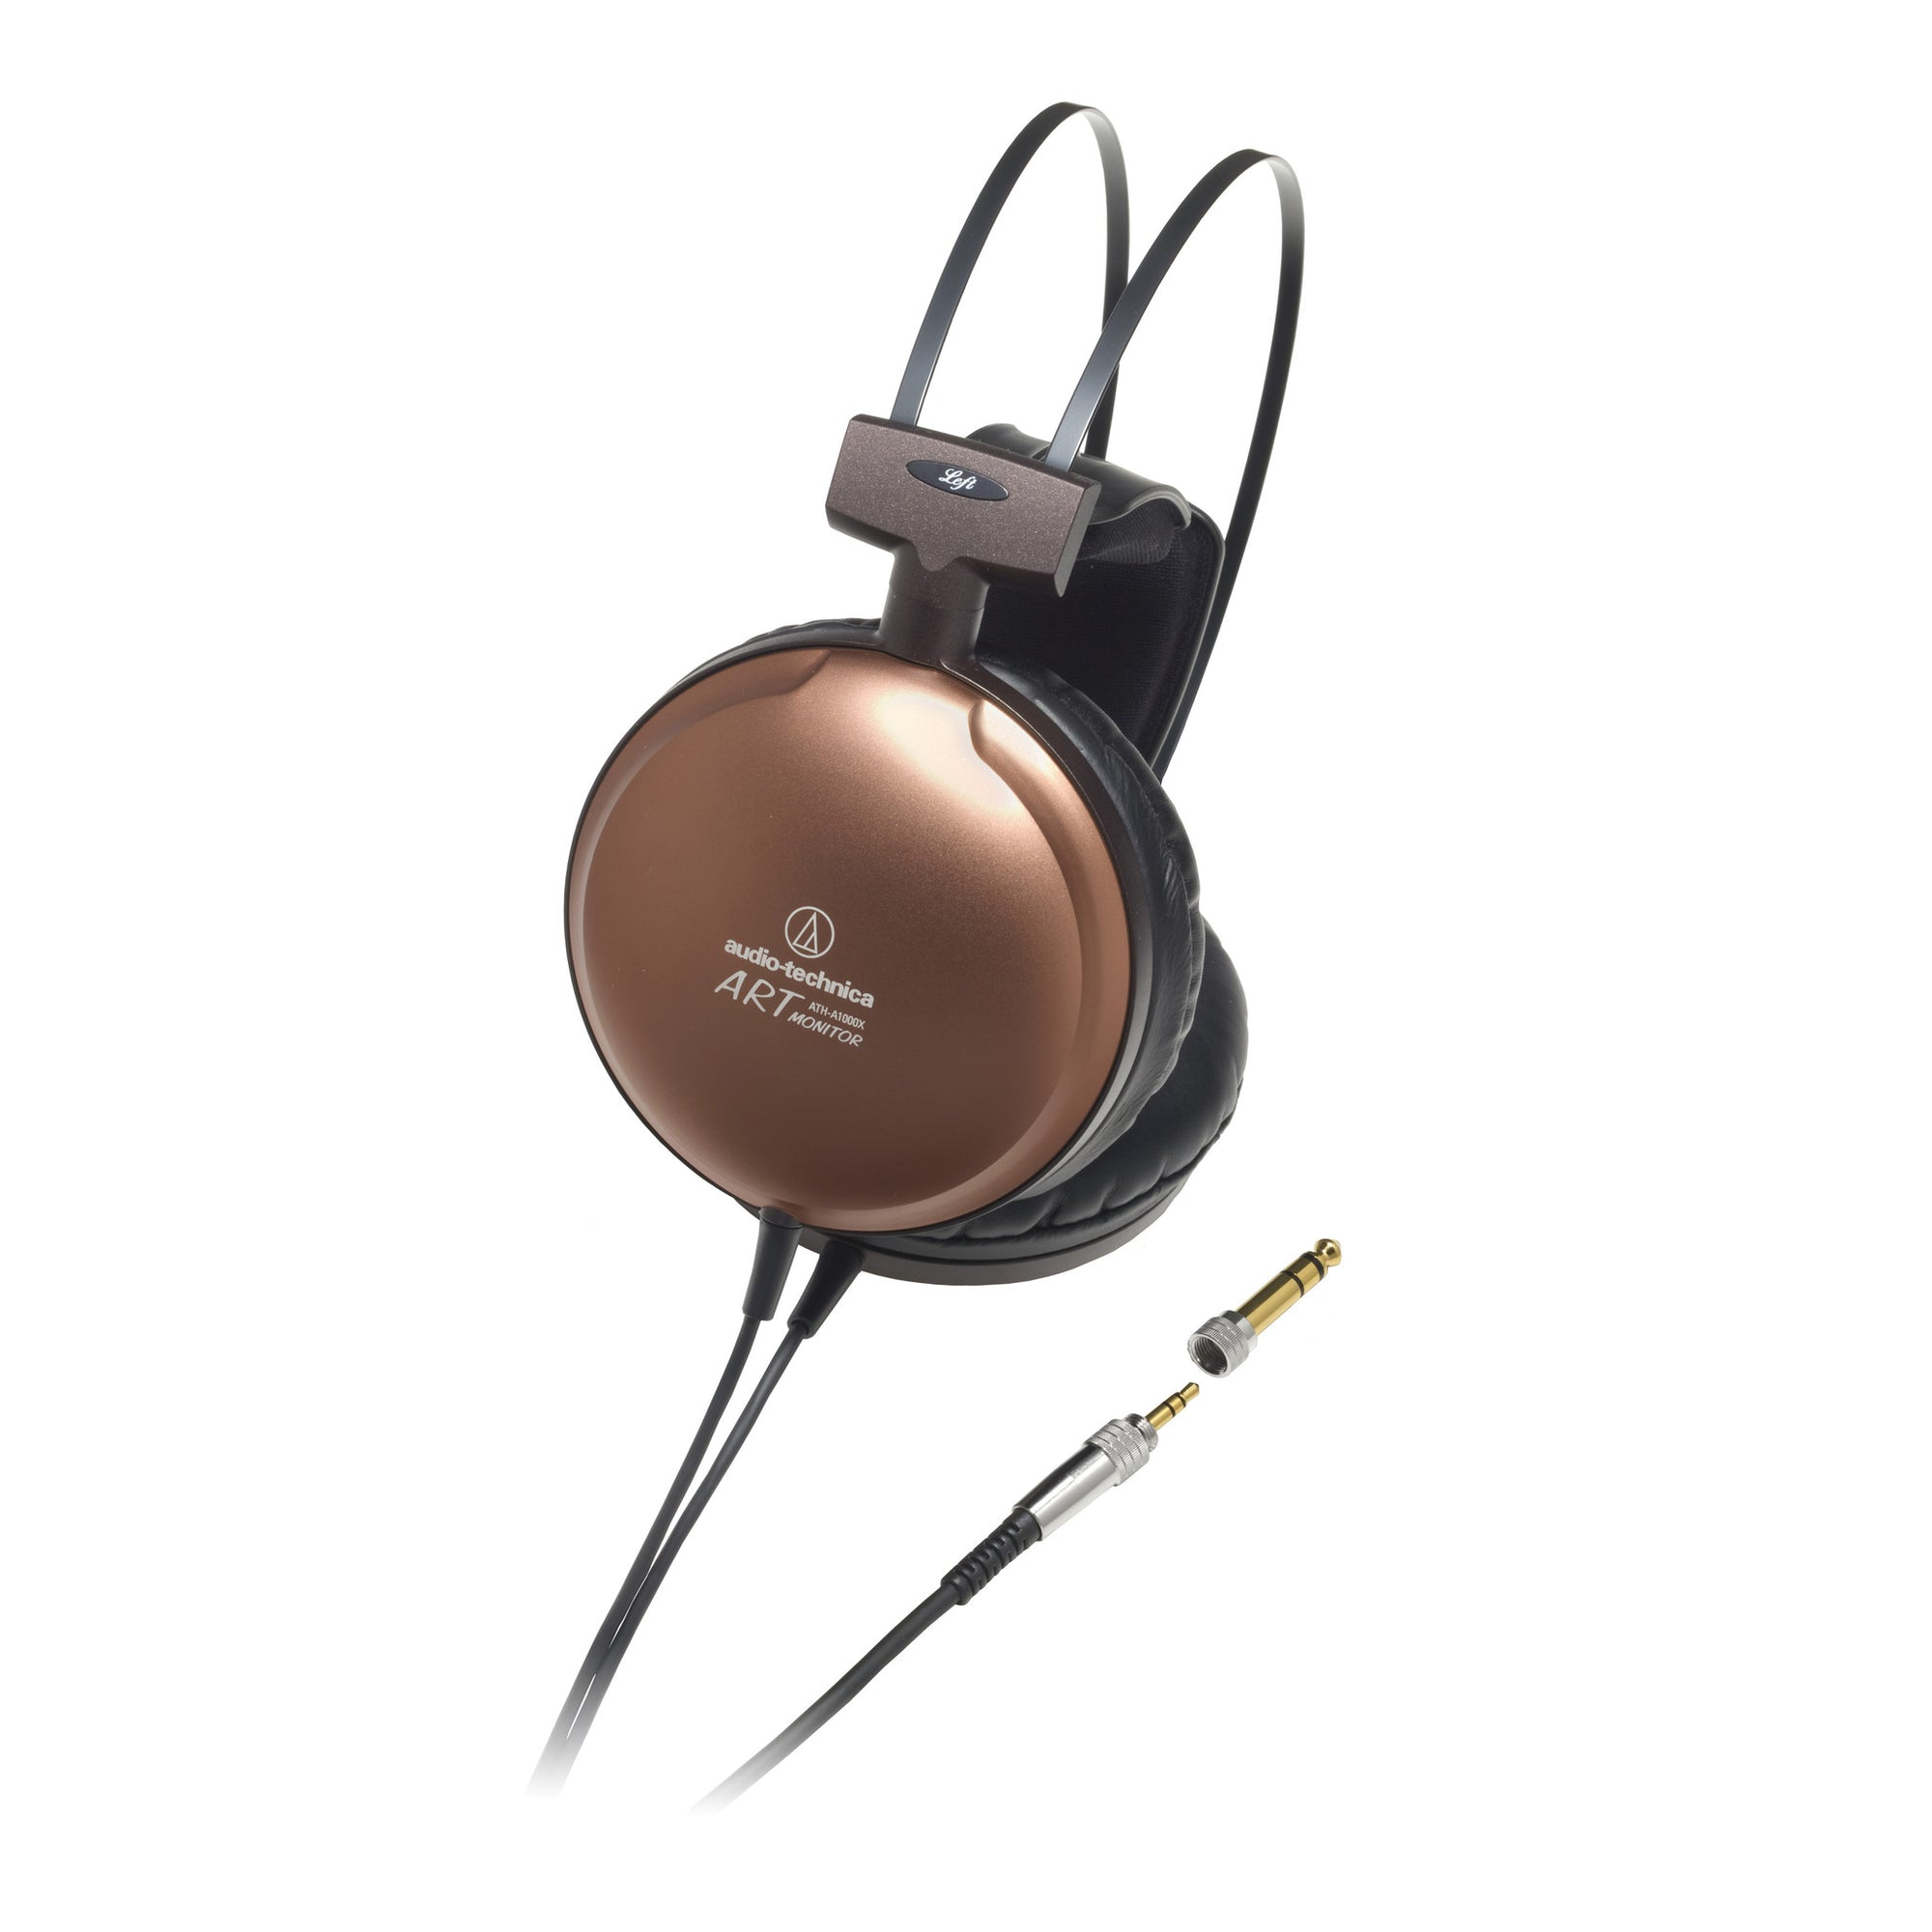 Audio Technica ATH-A1000x Audiophile Closed-Back Dynamic Headphone